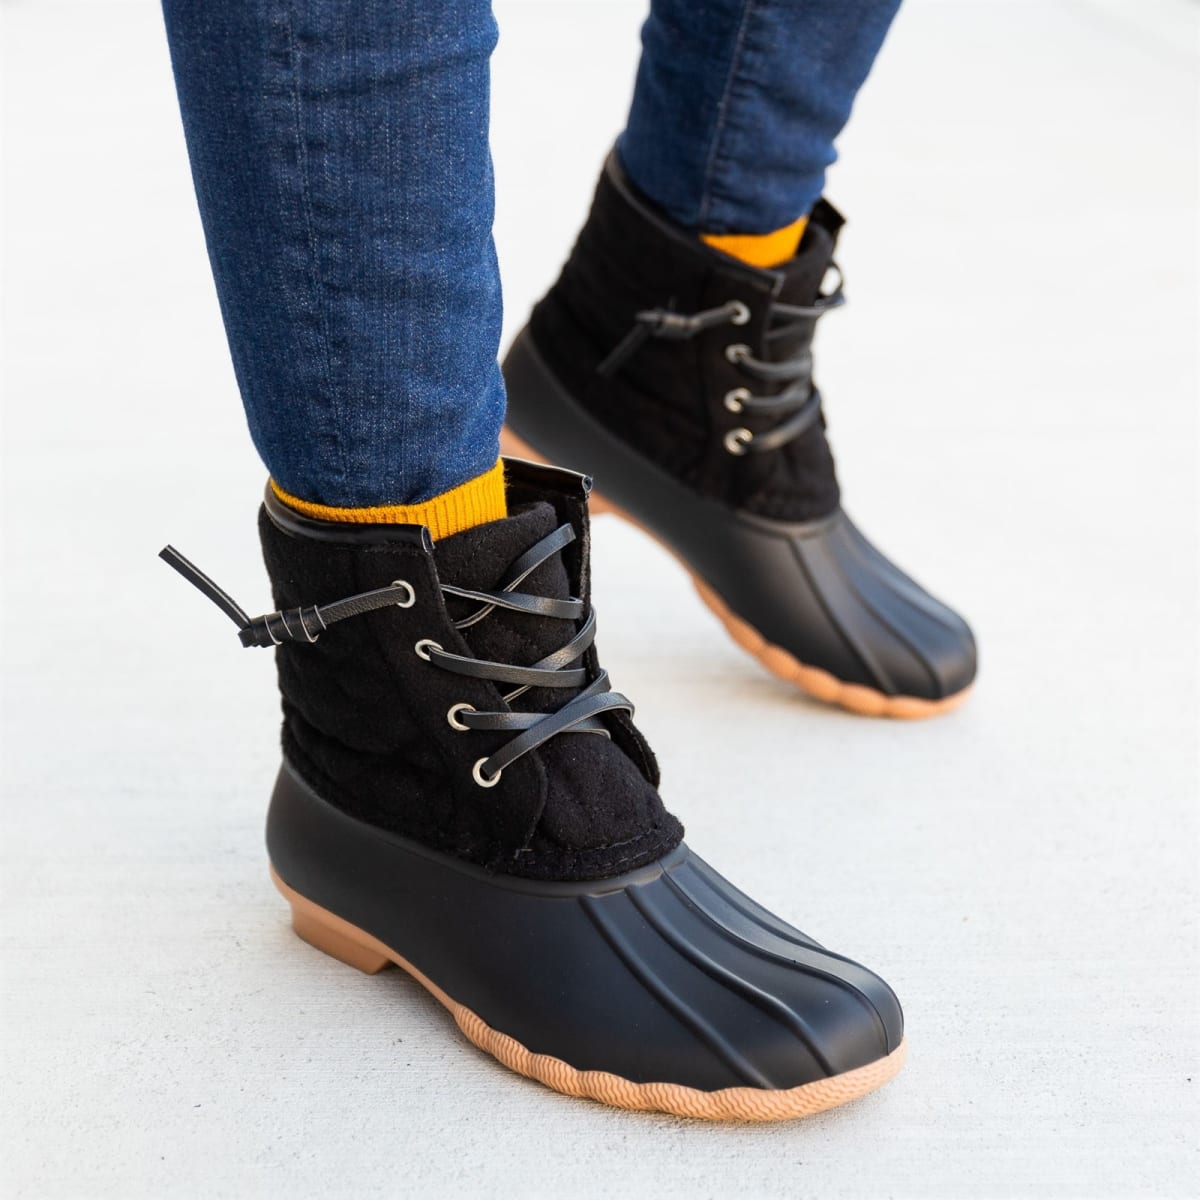 Comfy Chic Quilted Duck Boots – Only .99!